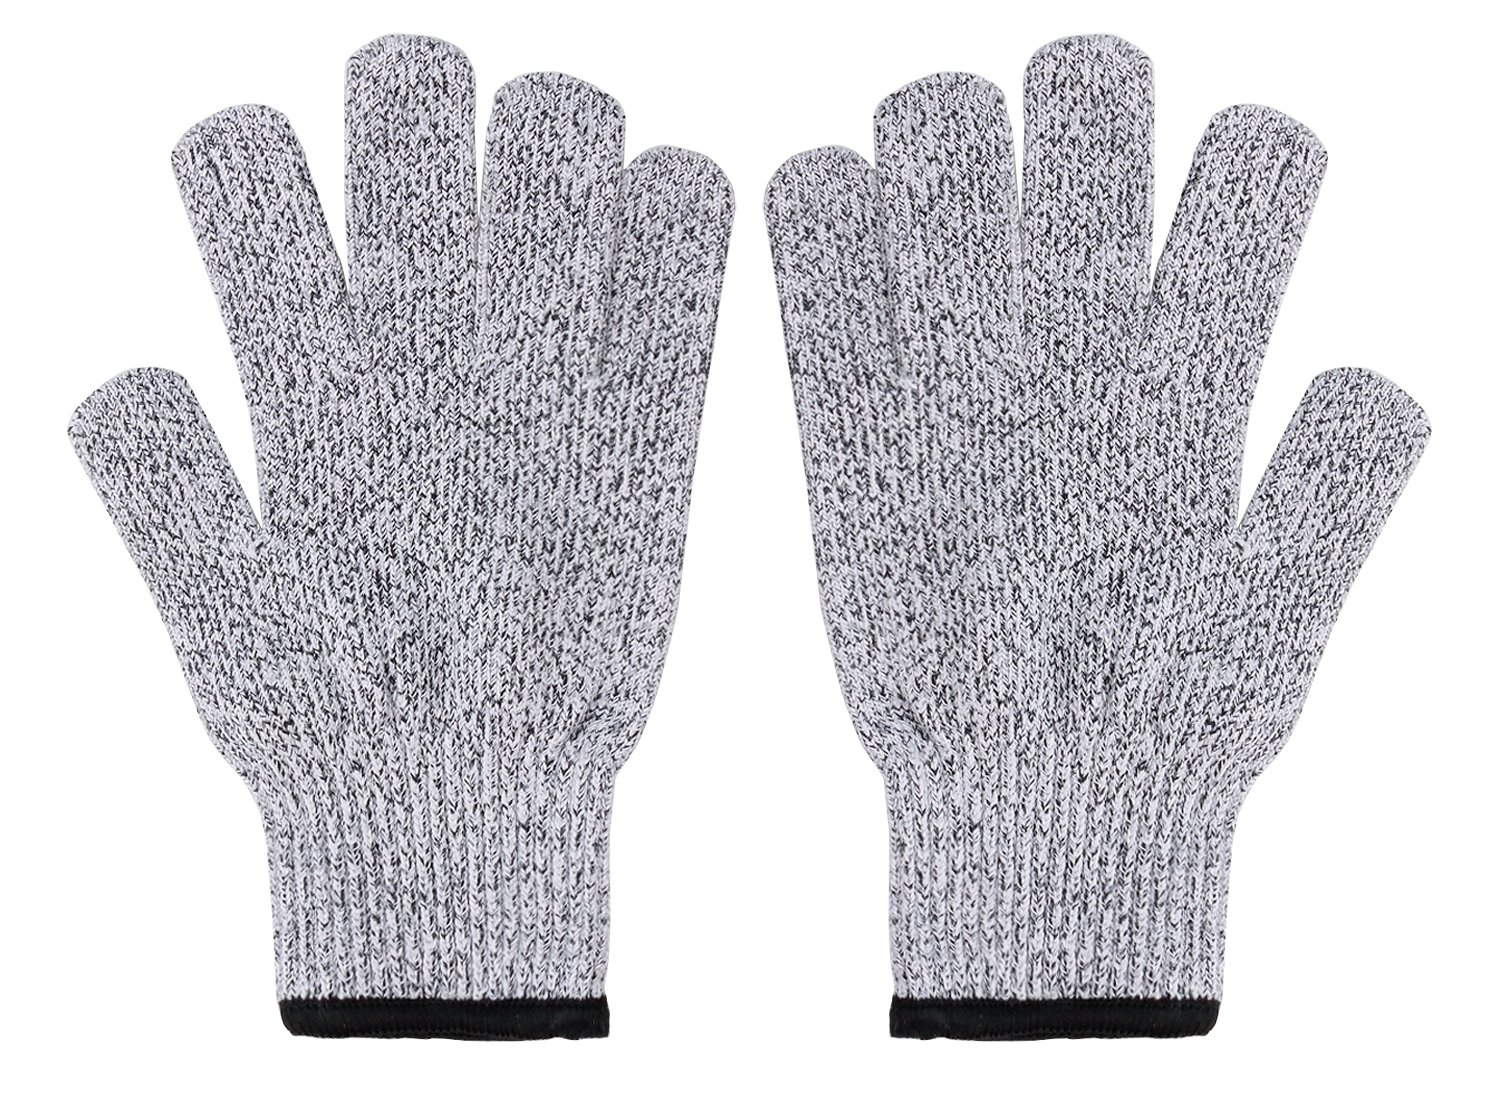 YiZYiF Cut Resistant Gloves Best Food Grade Kitchen Level 5 Cut Protection Knit Safety for Cooking, Working, Wood carving by YiZYiF (Image #6)